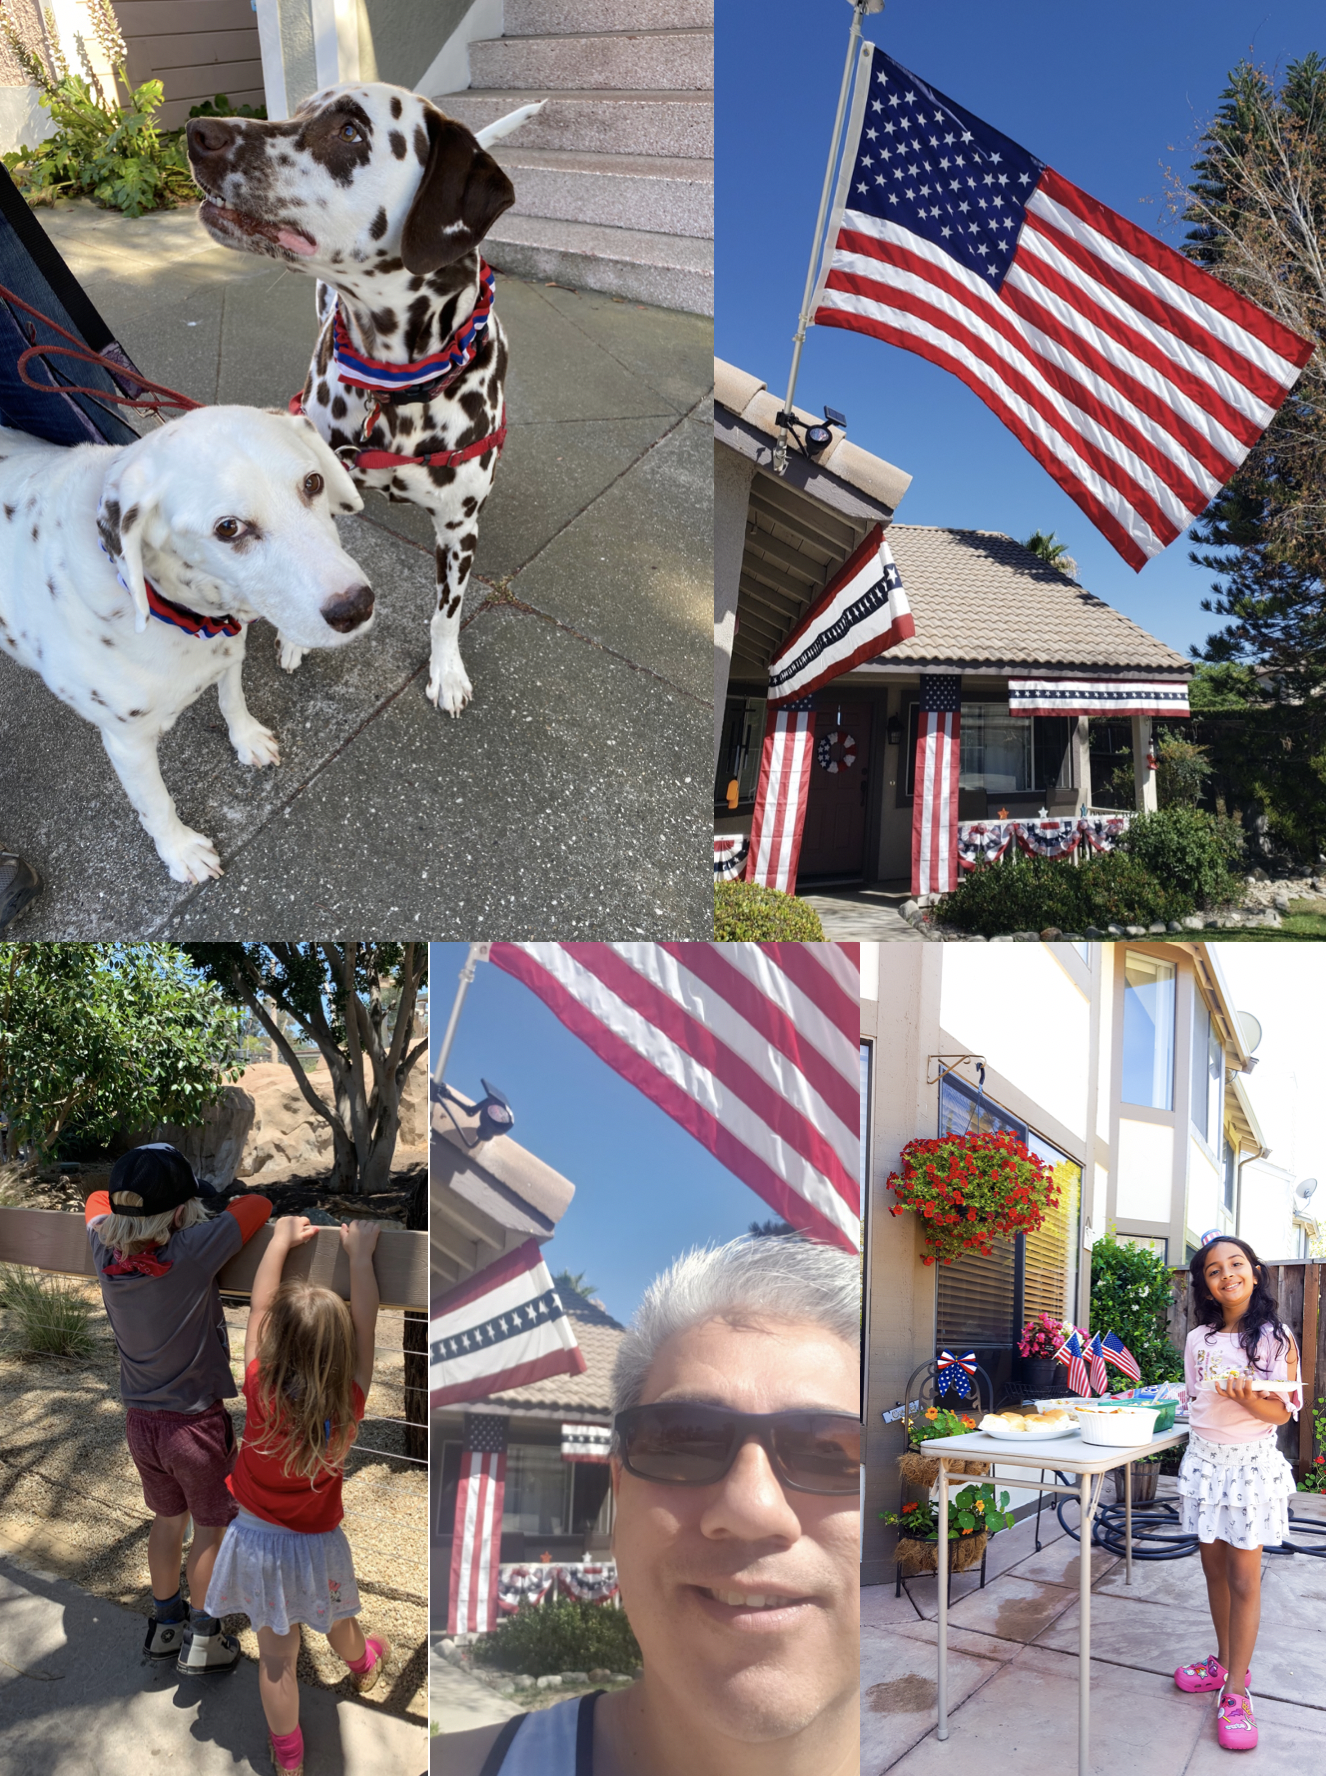 Independence Day Photo Collage: dogs, decorations and people.